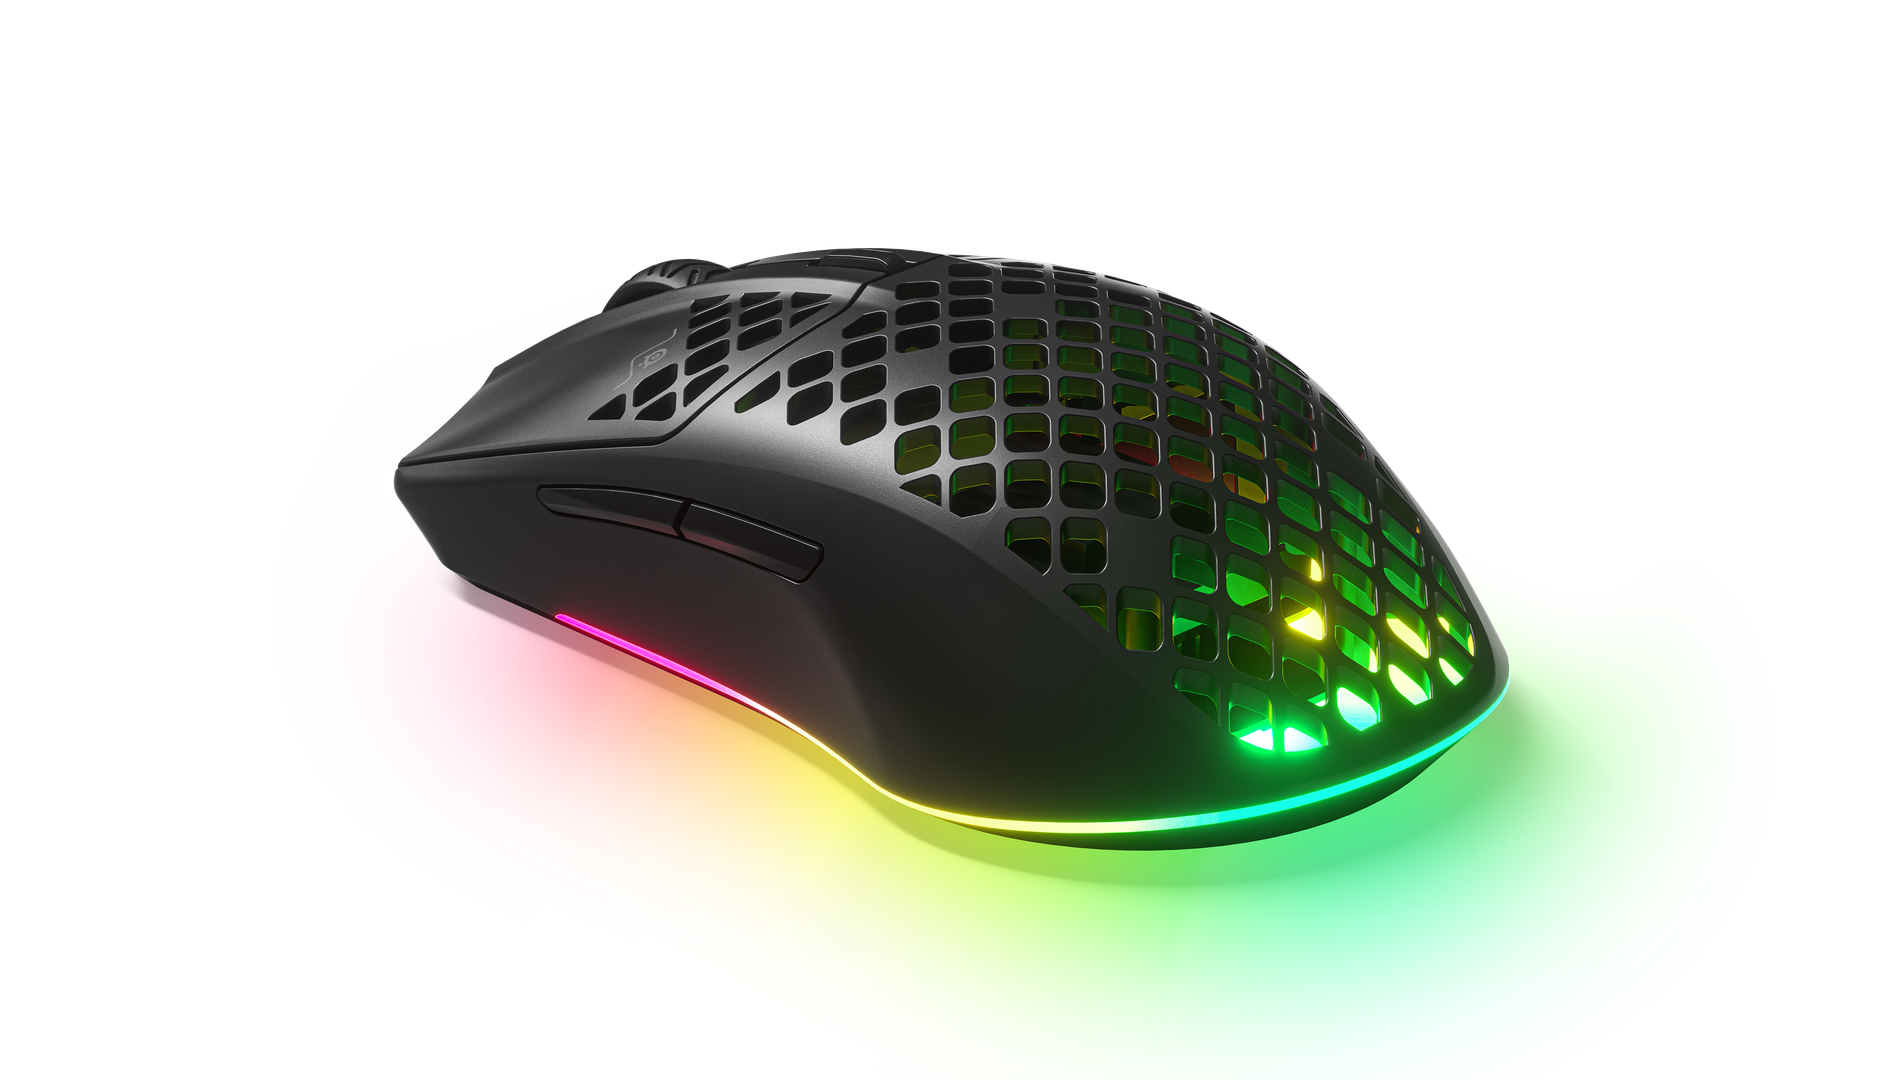 The Aerox 3 Wireless mouse, in all its hole-y glory, to keep you cool.